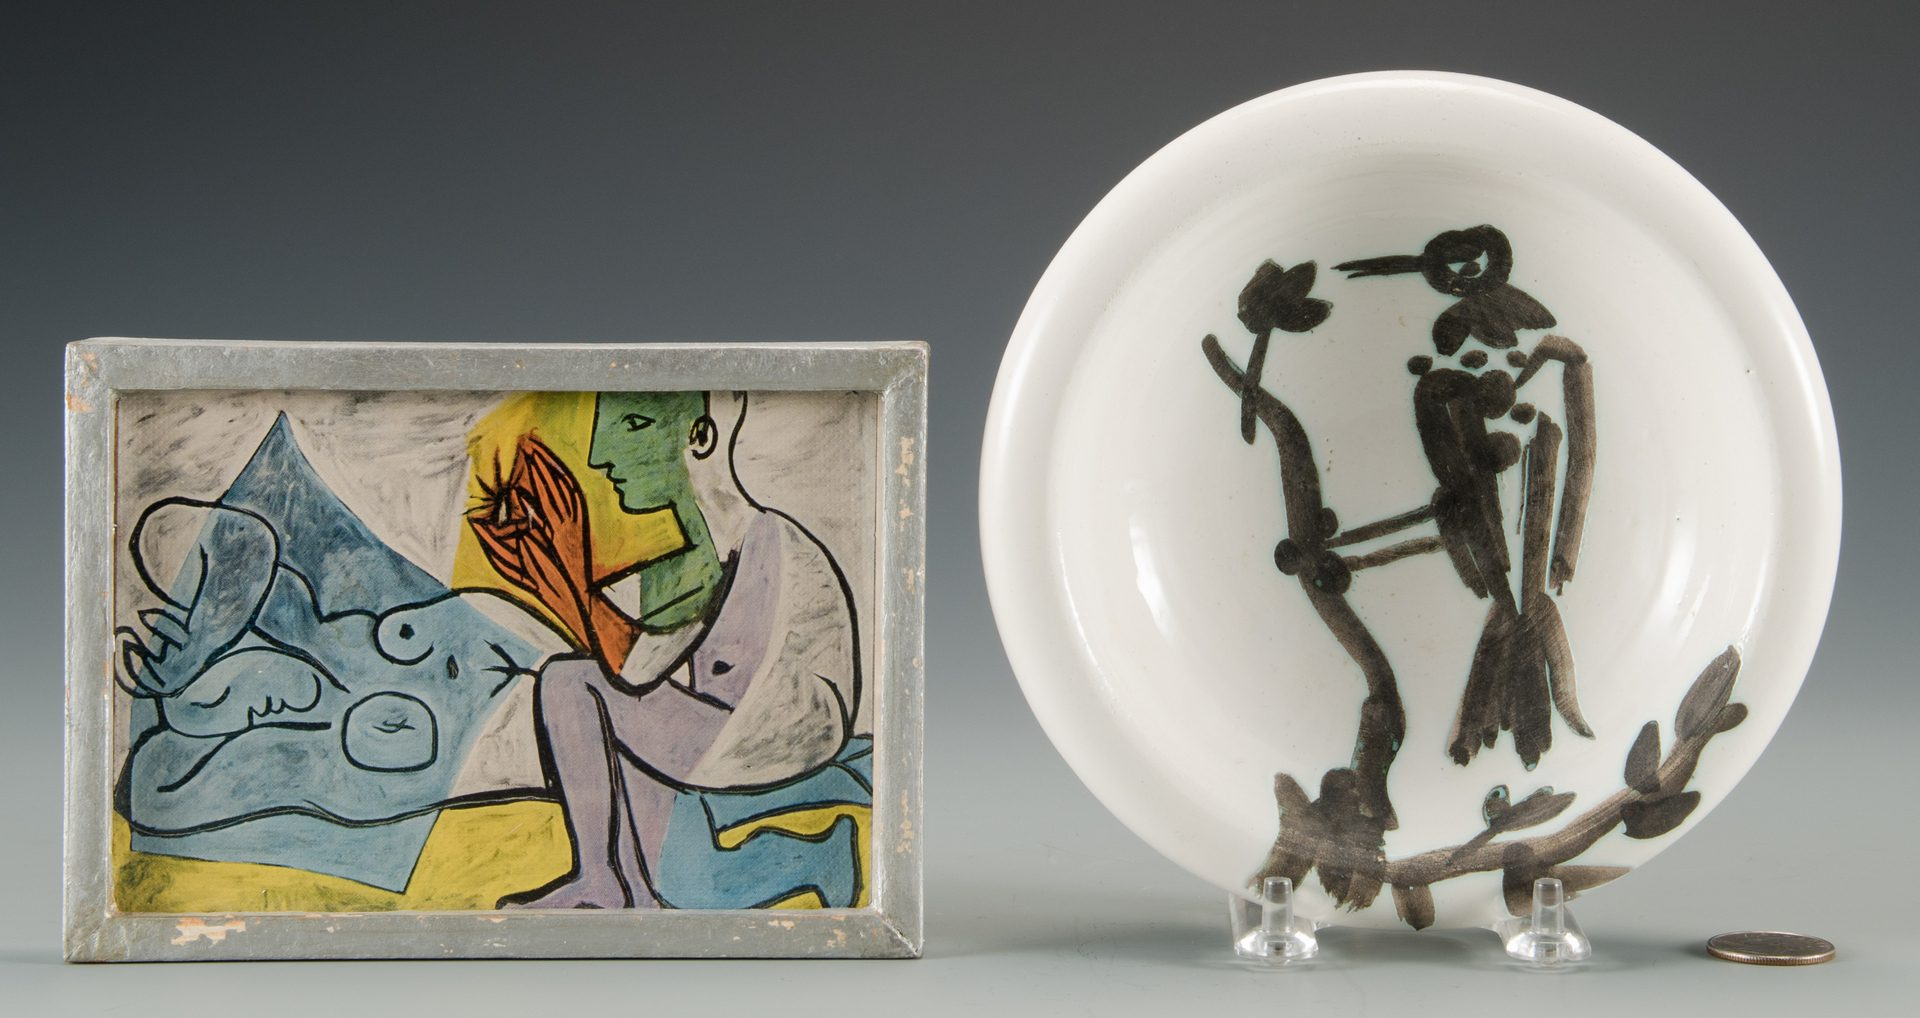 Lot 406: Picasso Ceramic Dish and Print